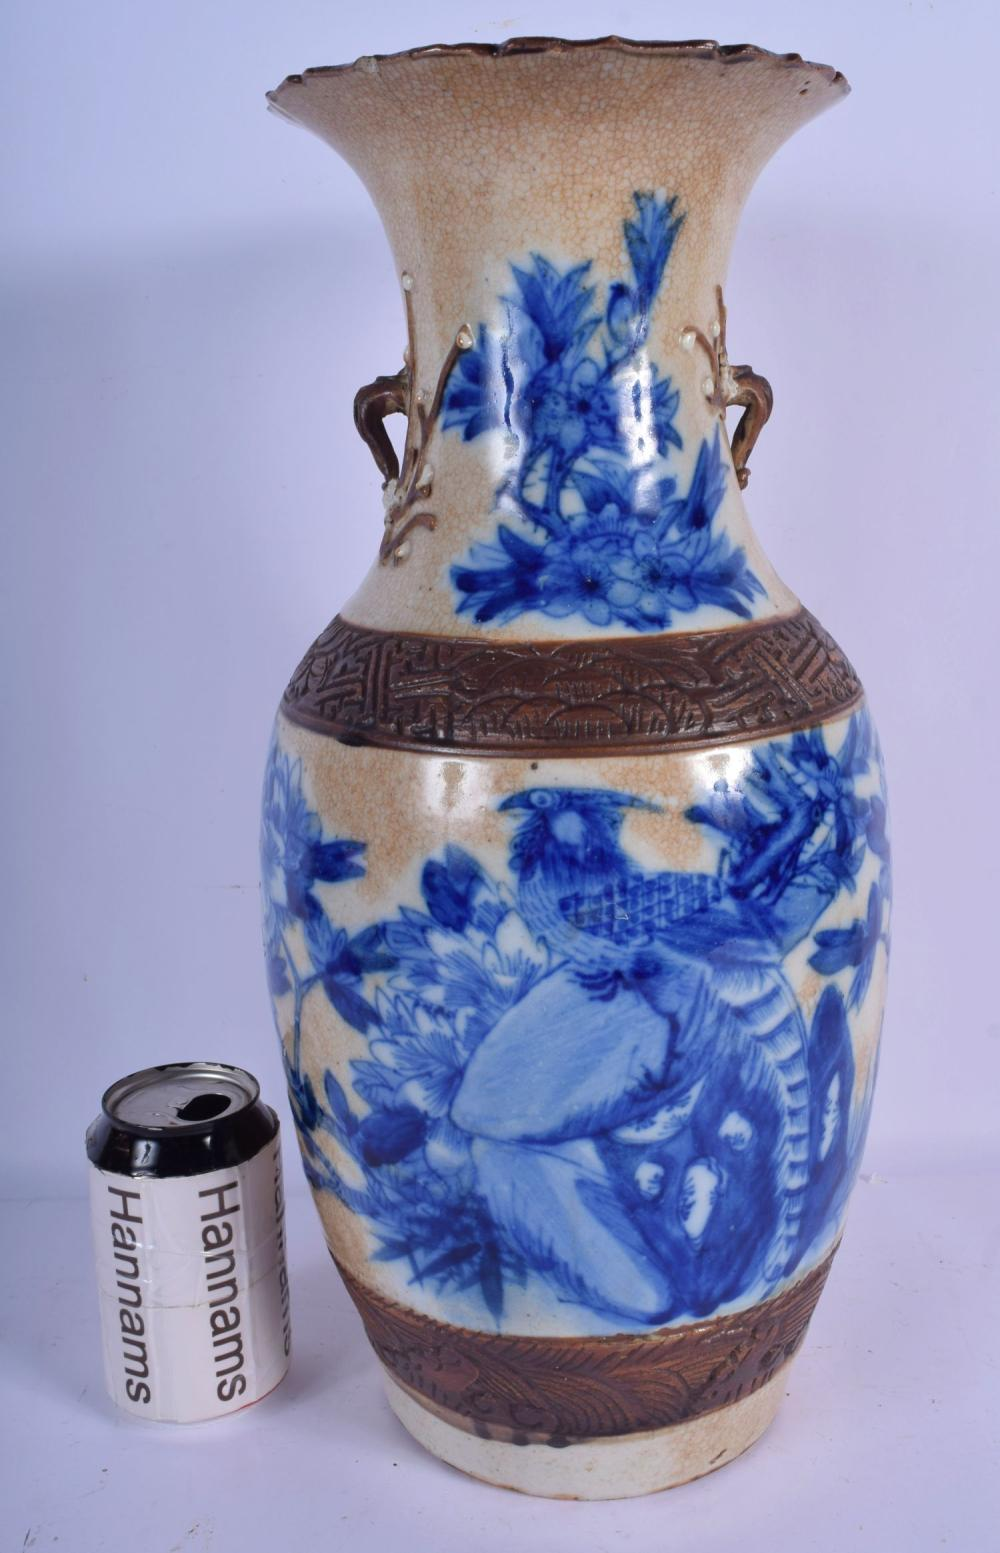 A LARGE 19TH CENTURY CHINESE CRACKLE GLAZED BLUE AND WHITE VASE Qing, painted with flowers. 44 cm x 16 cm.